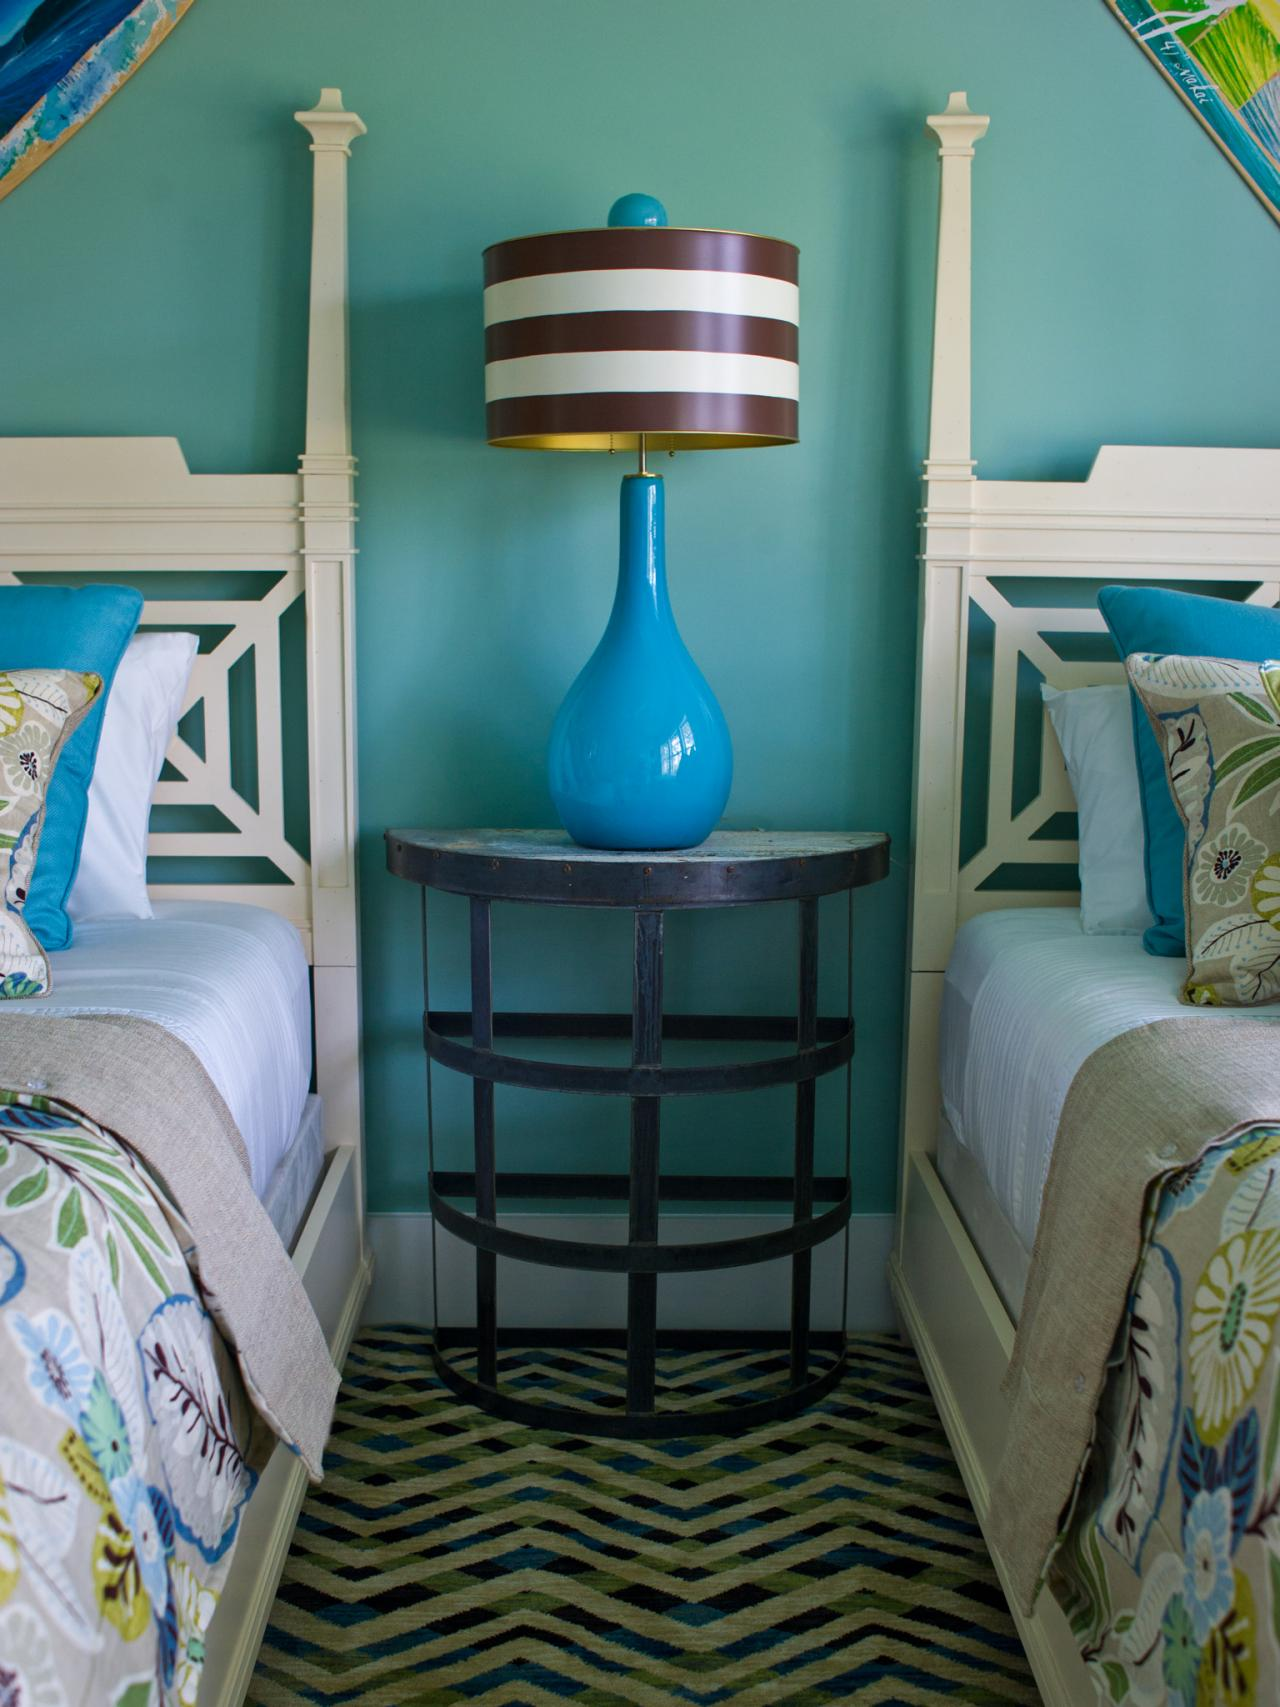 A Brightly Colored Turquoise and Coral Asian-Inspired Bedroom